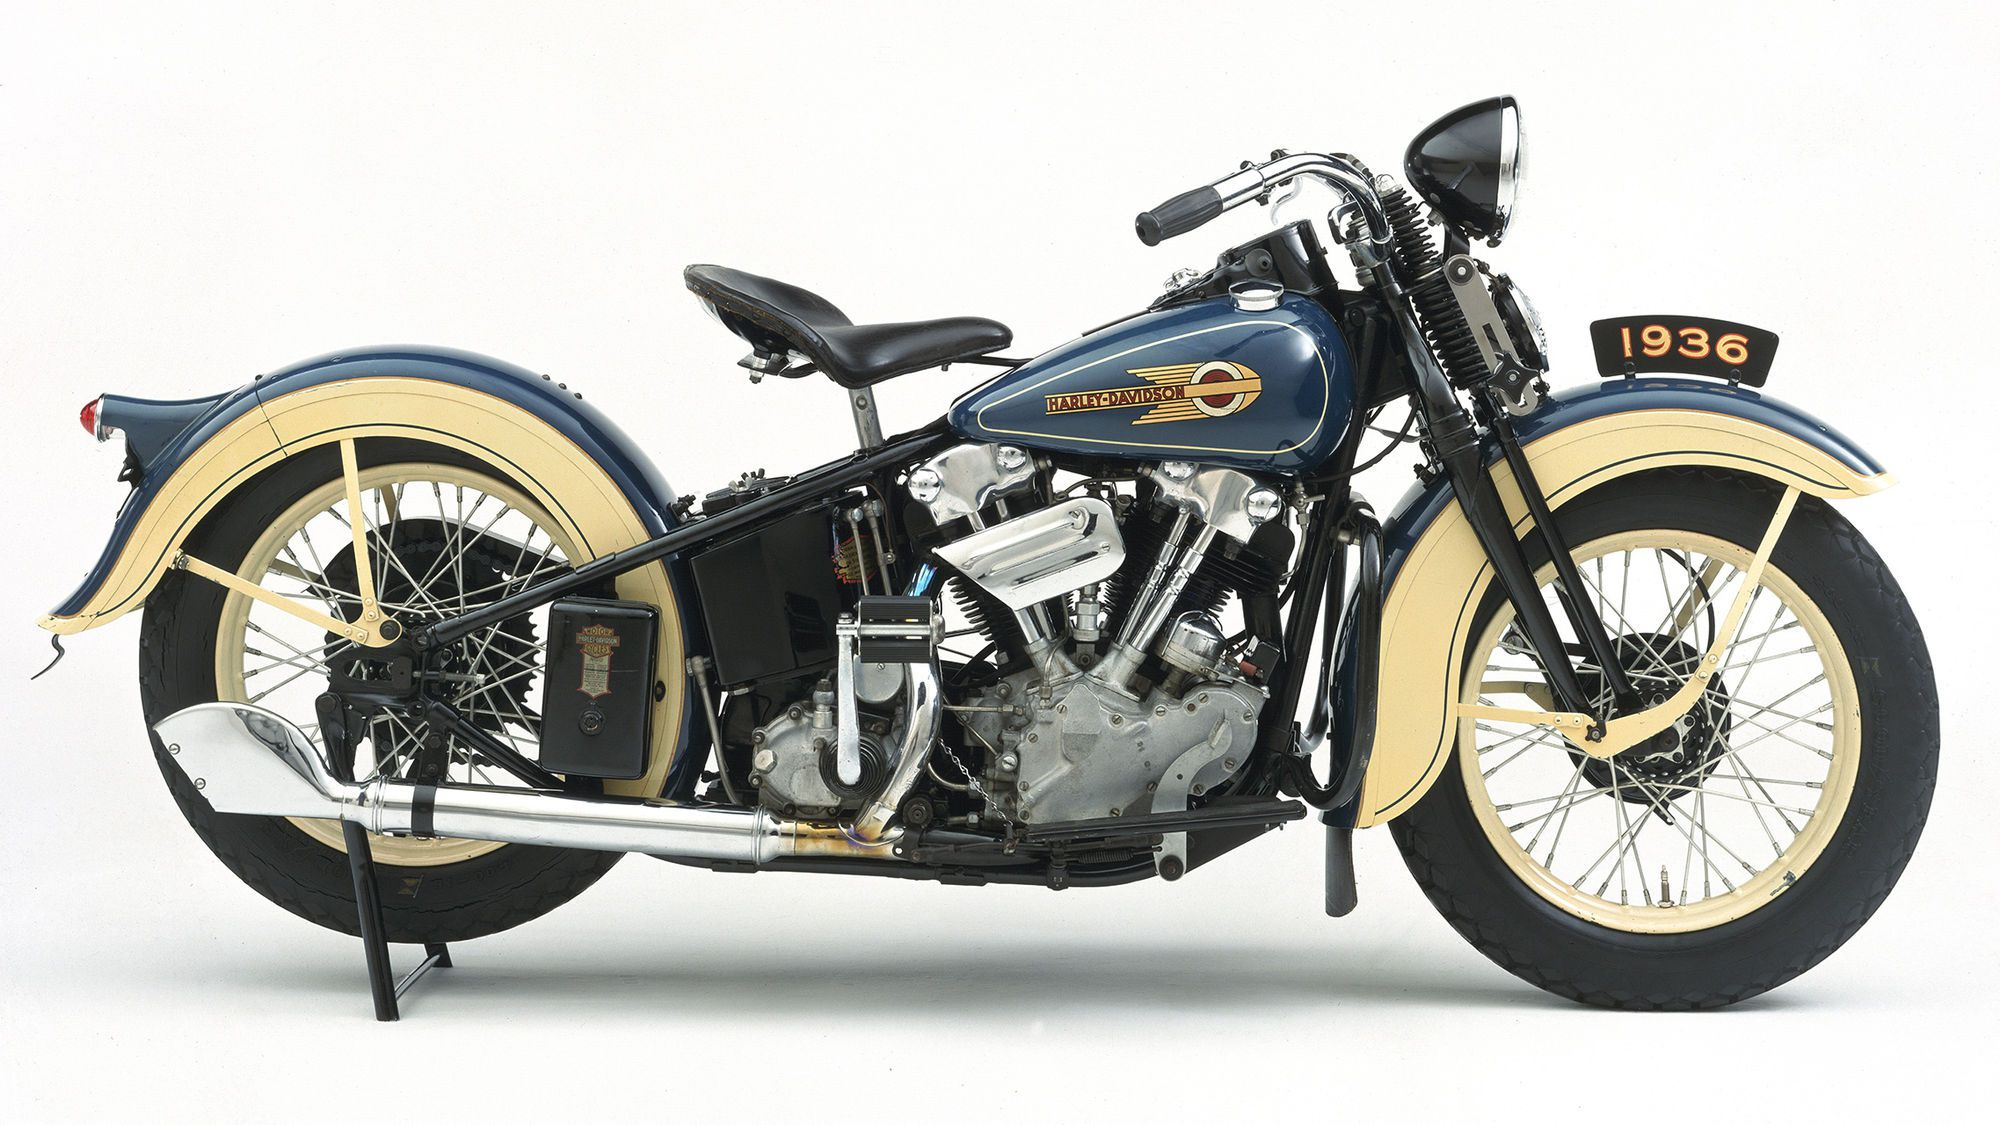 Harley-Davidson Shovelhead V-Twin Motorcycles - HISTORY OF THE BIG